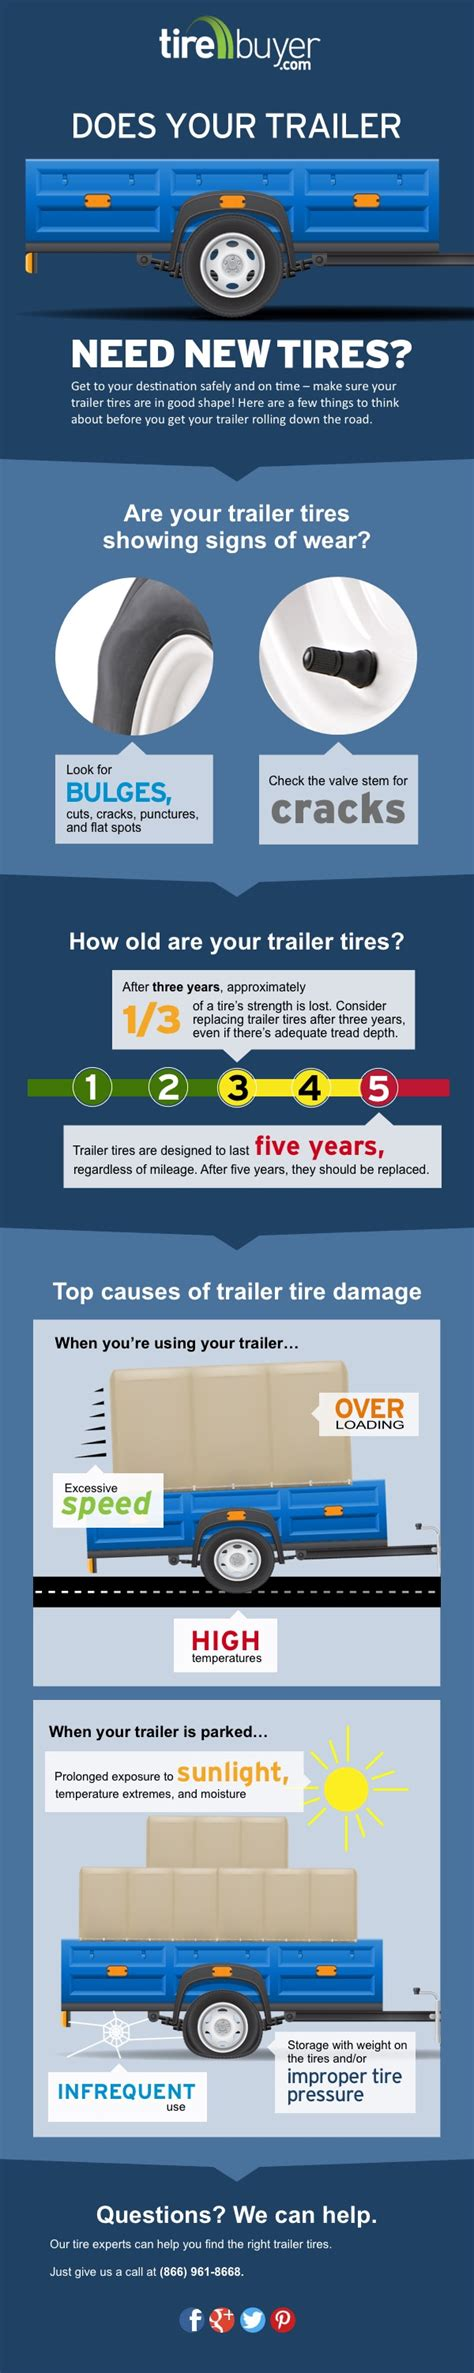 boat trailer tires get hot how to tell it s time to replace trailer tires tirebuyer